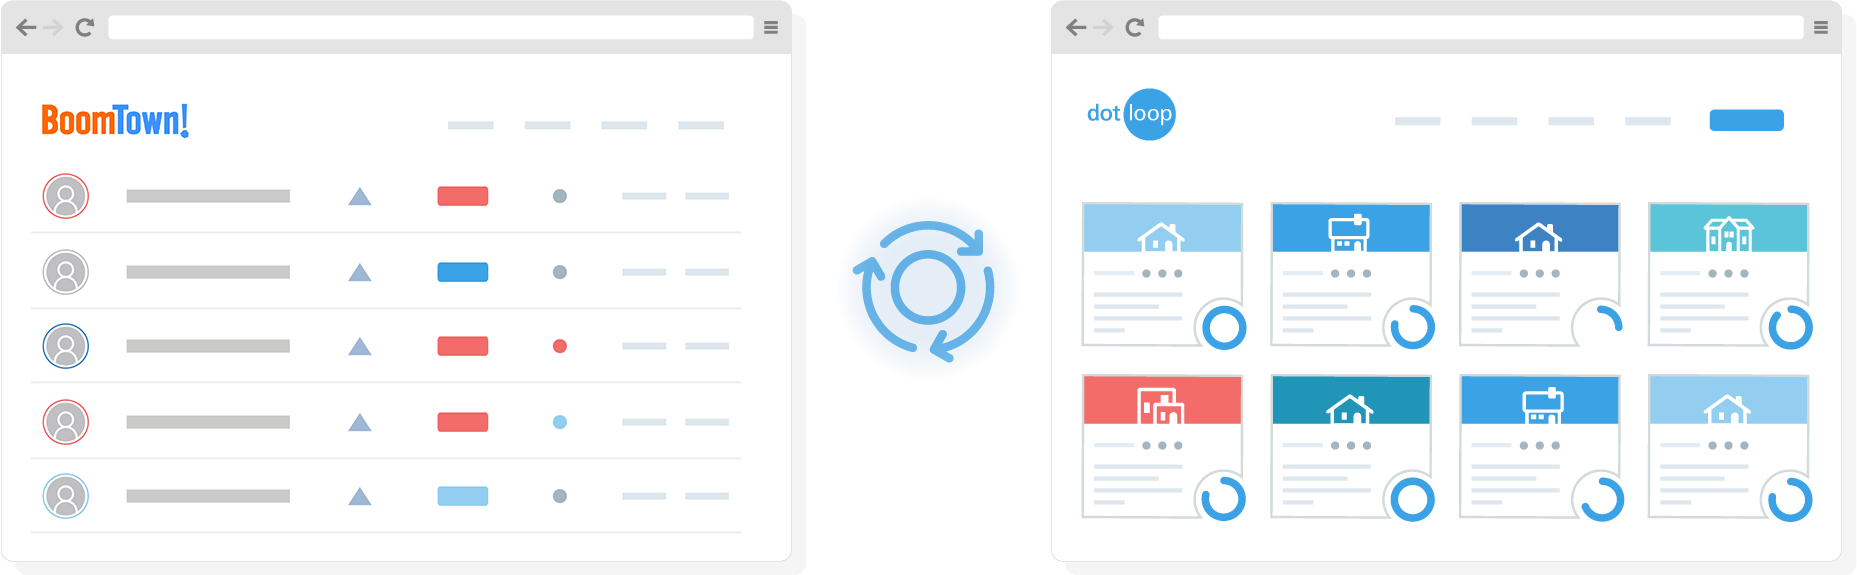 BoomTown integration with dotloop